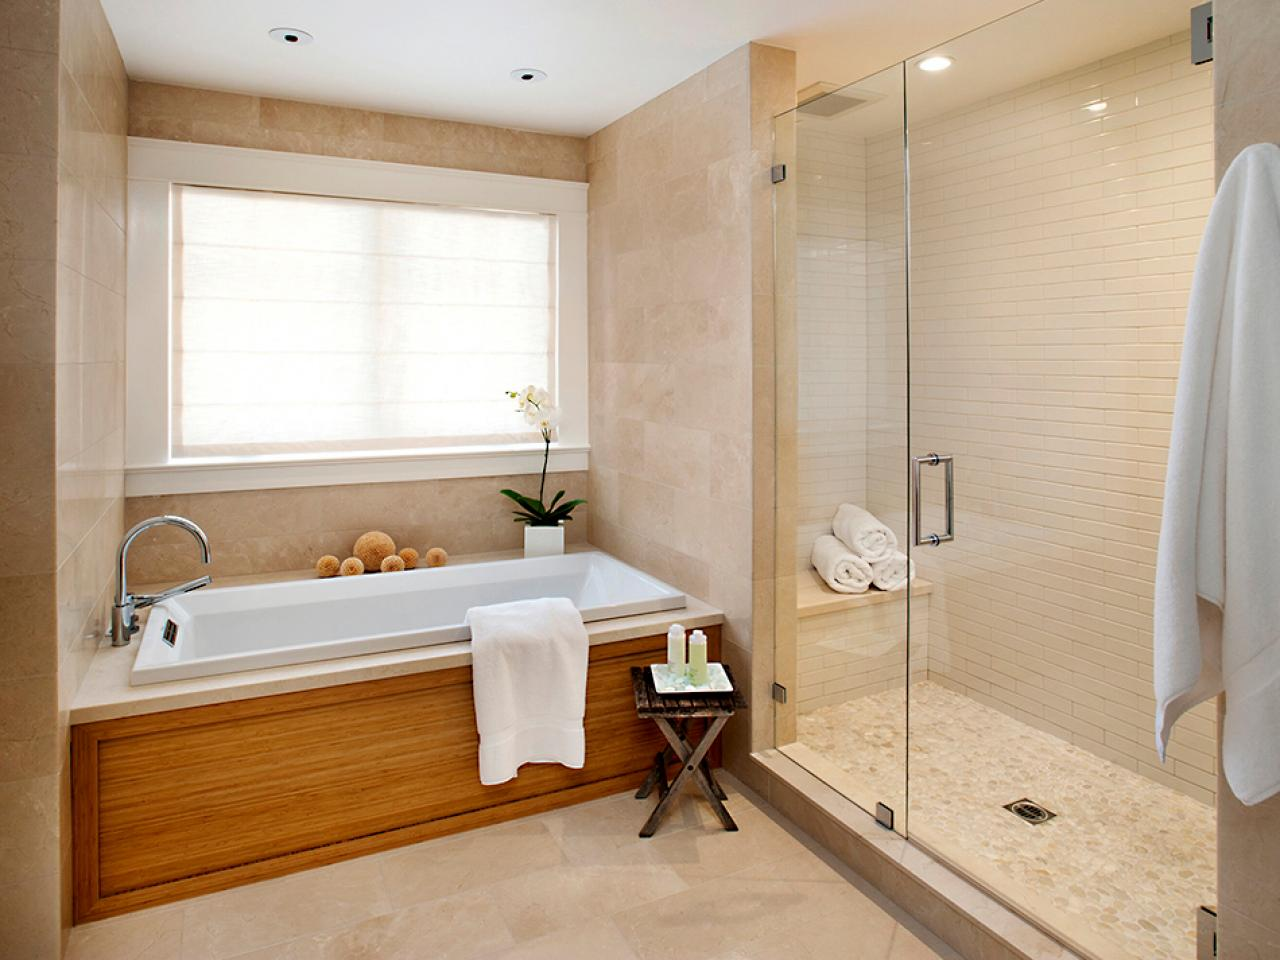 30 great pictures and ideas of neutral bathroom tile designs ideas 21 dailygadgetfo Images